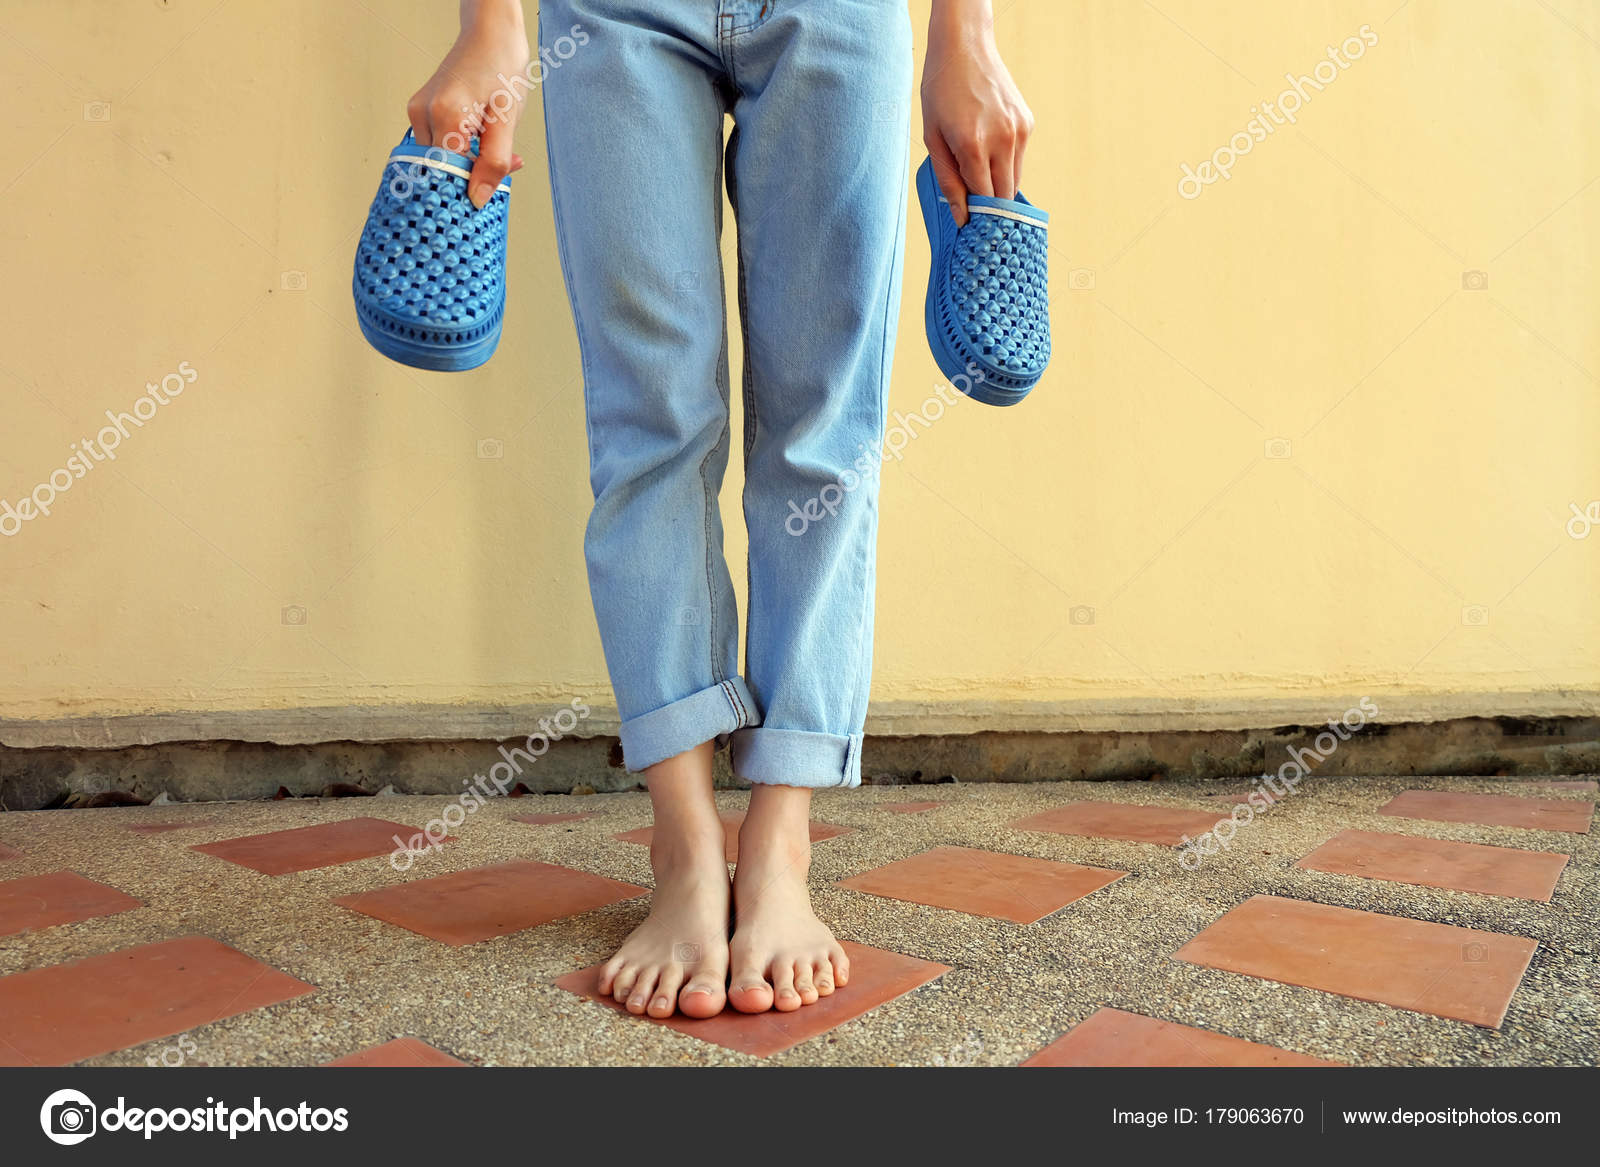 64334a41aaef Blue Flip Flops Fashion Woman Wear Blue Sandals Blue Jeans — Stock Photo